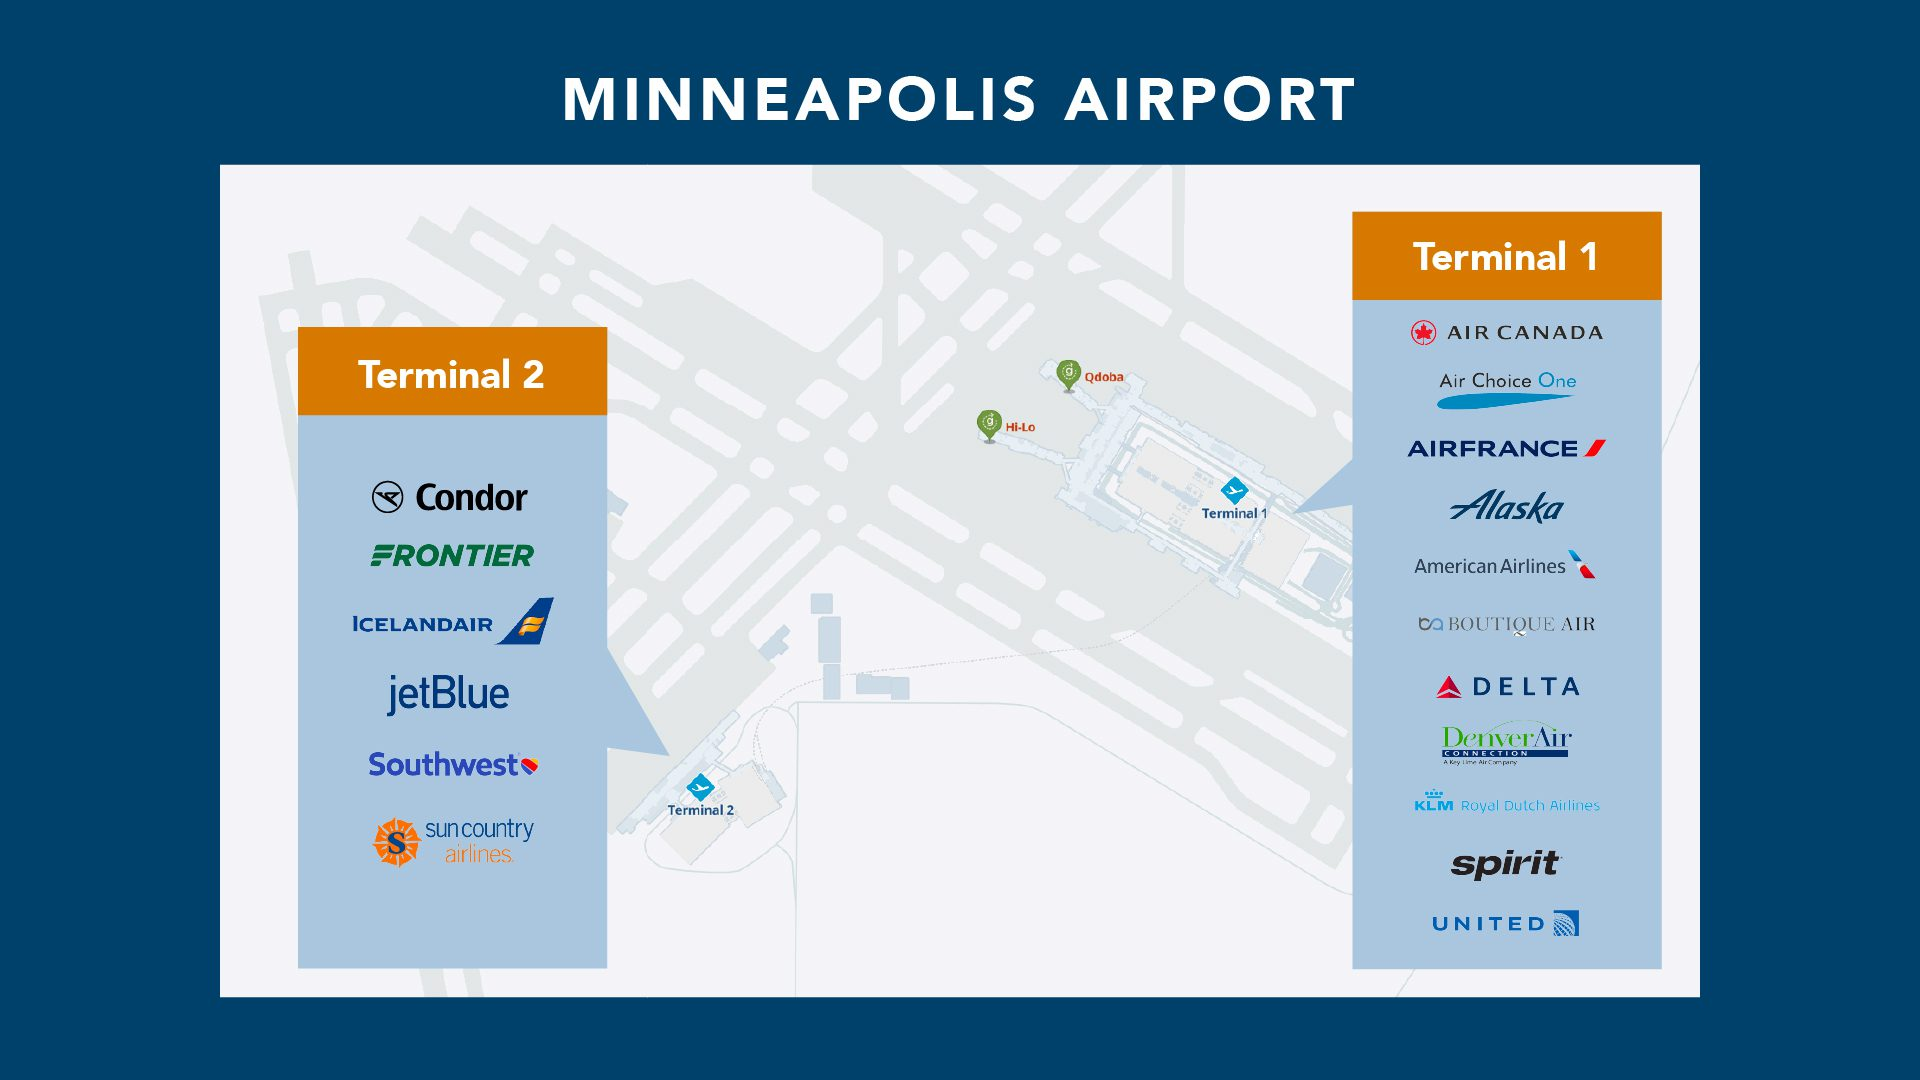 Minneapolis airport terminal map